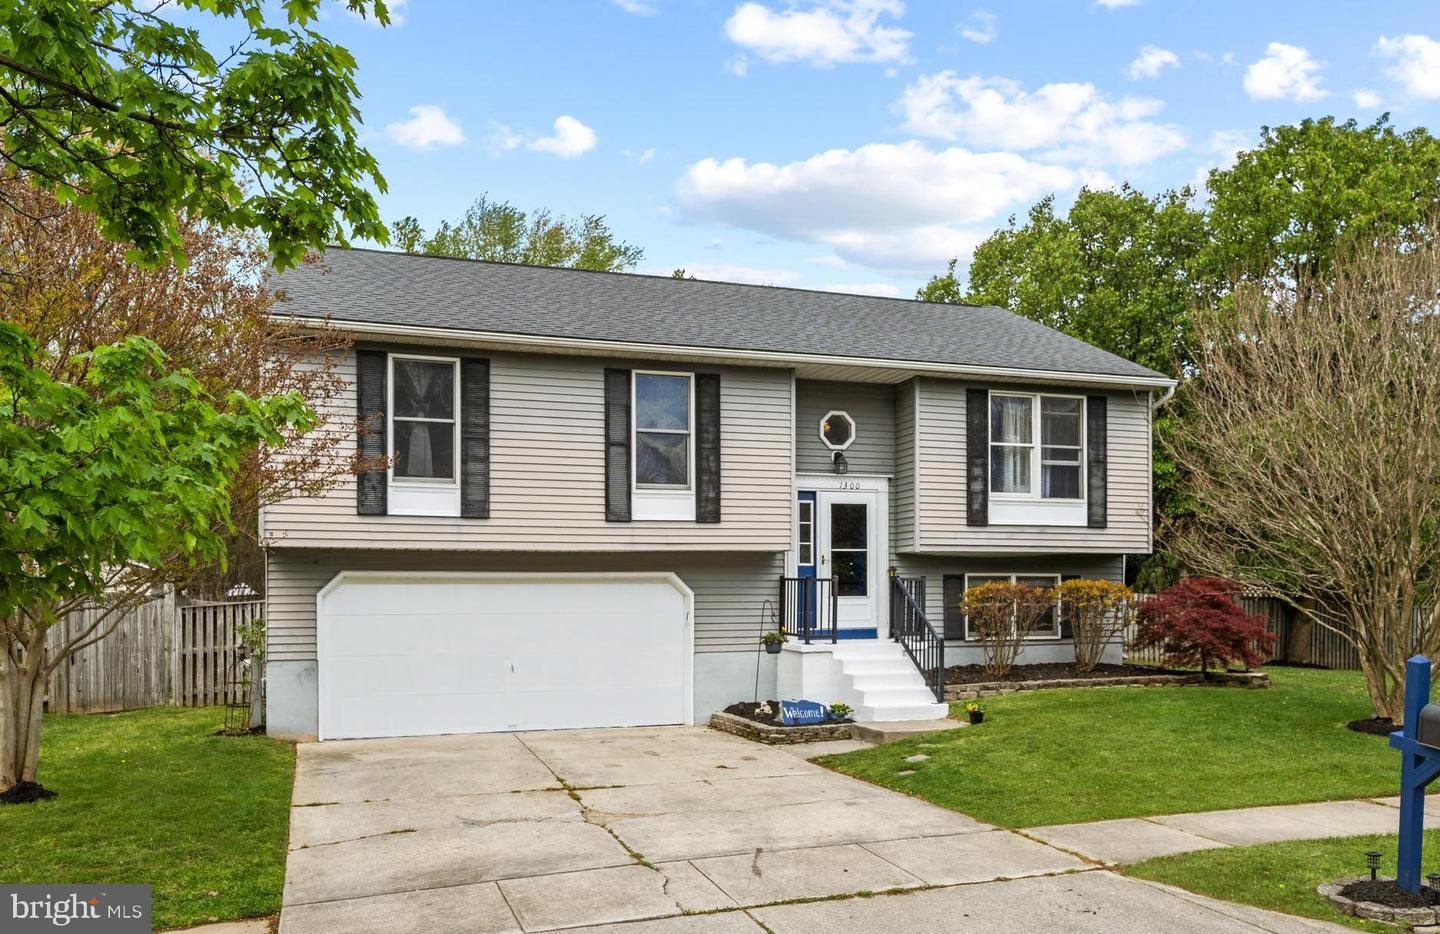 1300 SOMERSET RD, SEVERN, Maryland 21144, 3 Bedrooms Bedrooms, ,3 BathroomsBathrooms,Single Family,For Sale,1300 SOMERSET RD,MDAA465876